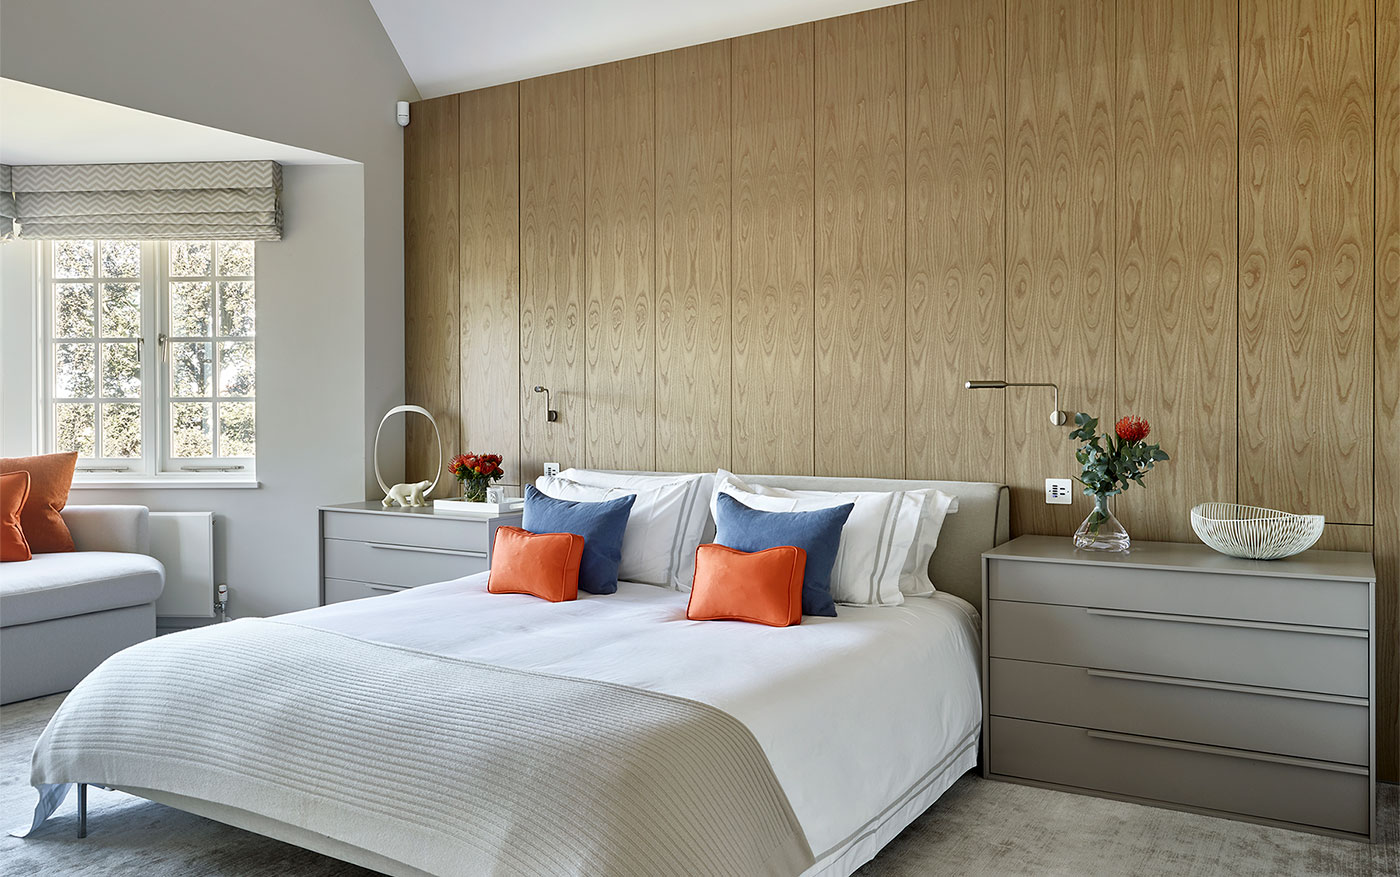 Perfectly accesorised bedside tables in the master bedroom of Hampstead.